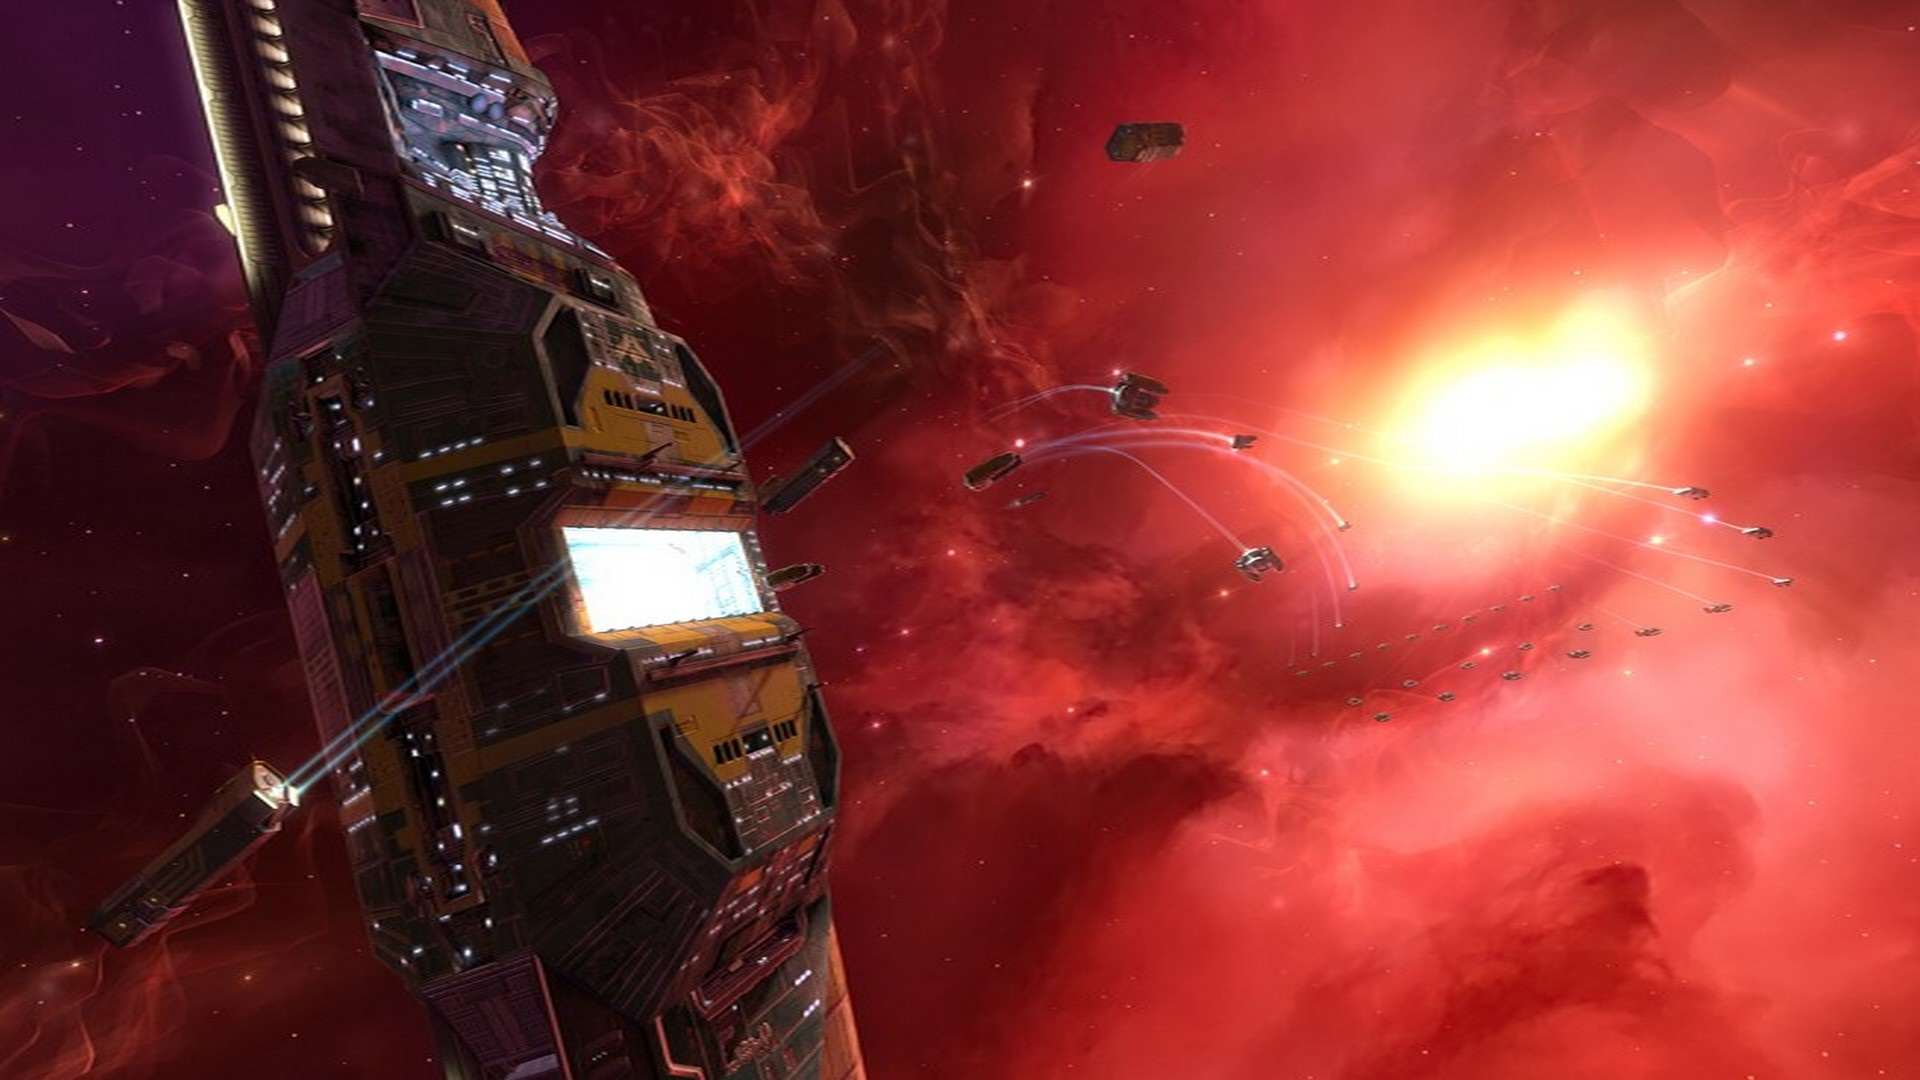 Five Of The Greatest Space Strategy Games gallery 462 image 2604 1431199631 large